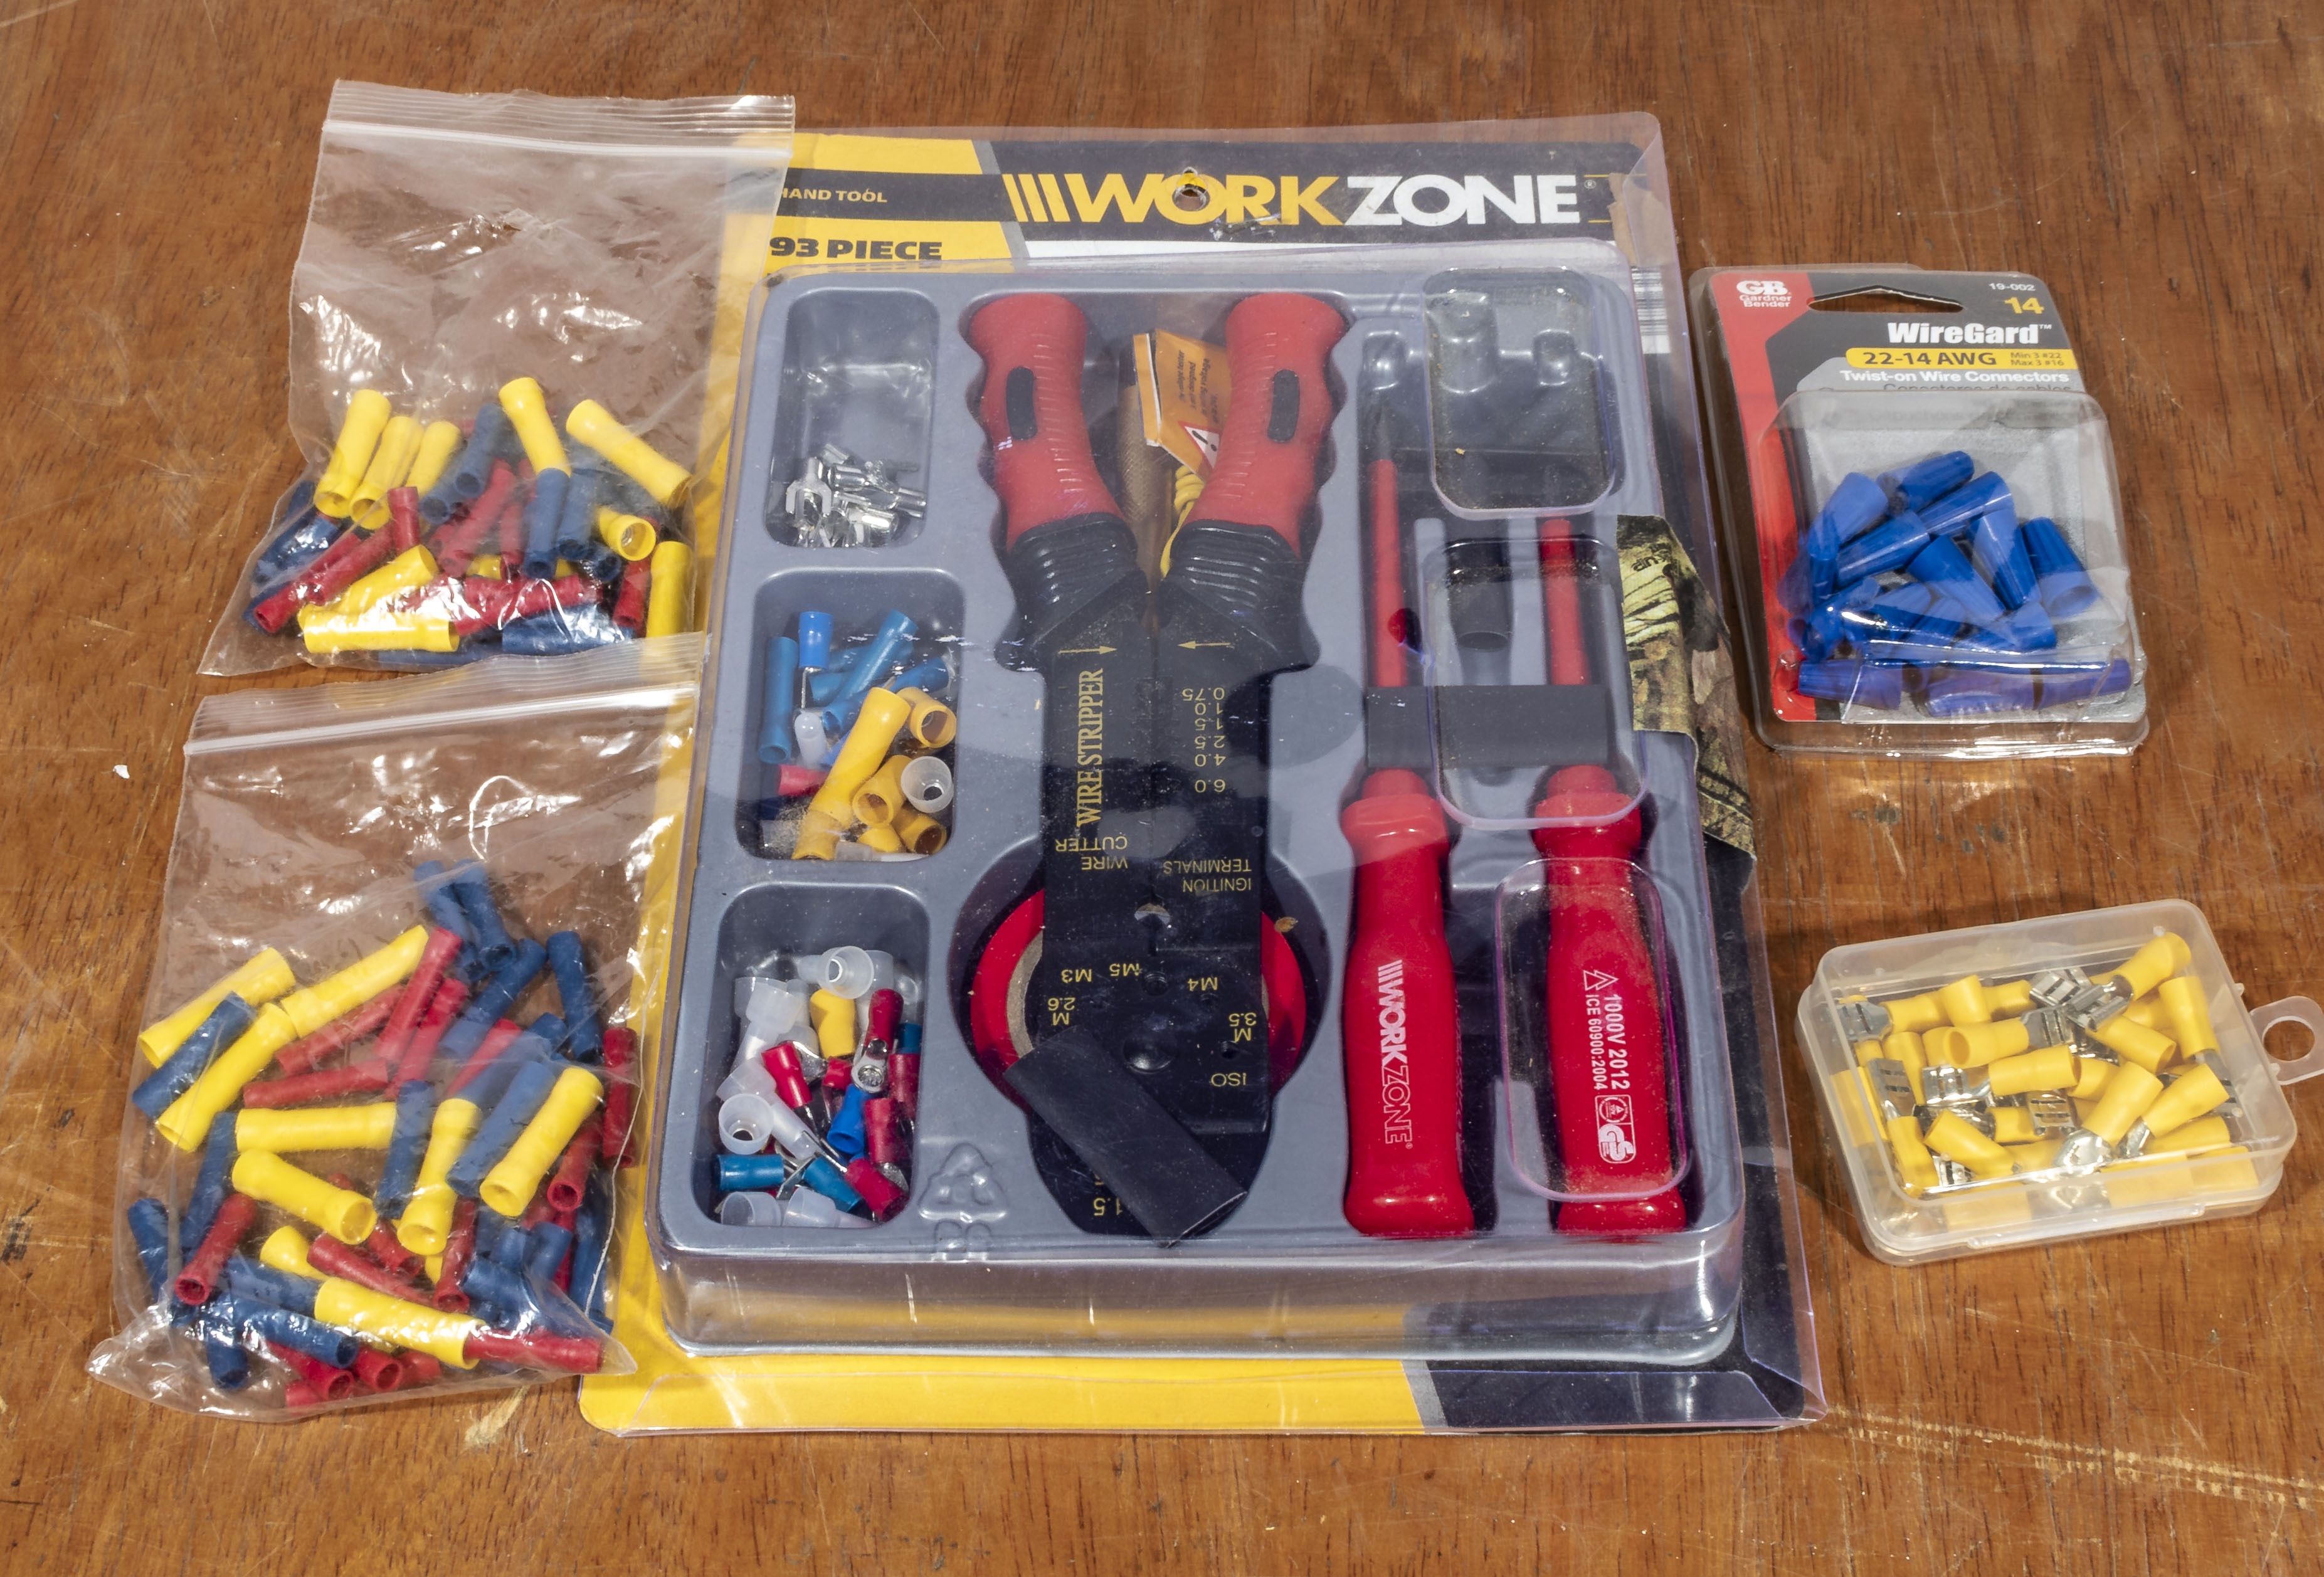 Workzone electricians wire strippers/crimping set with crimps